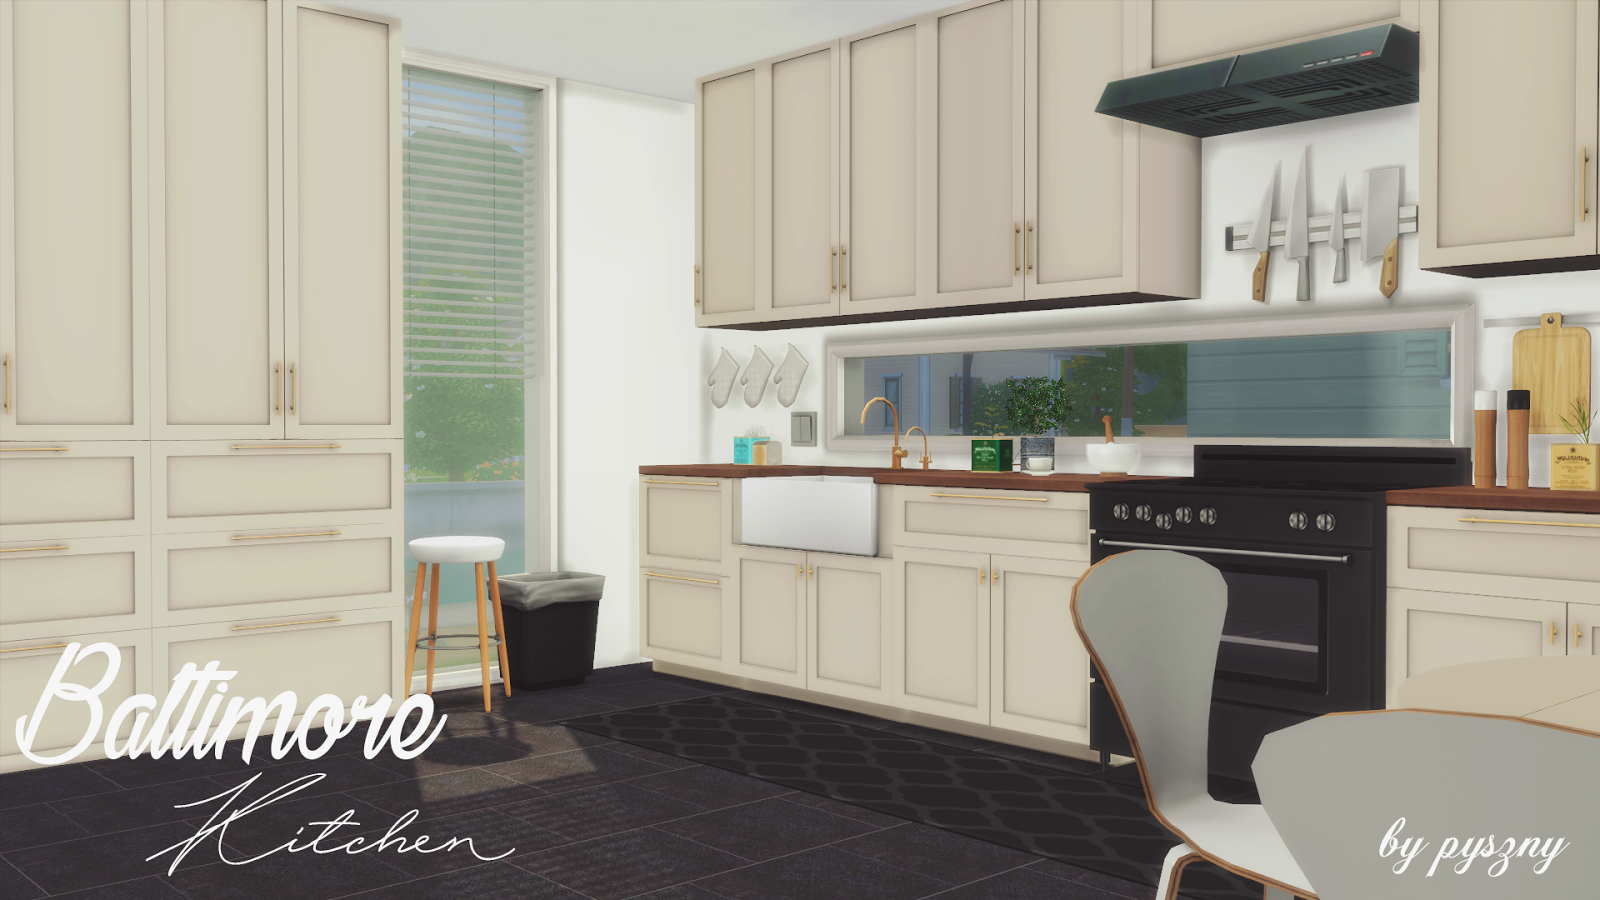 Best Ikea Finds Baltimore Kitchen By Pyszny Liquid Sims